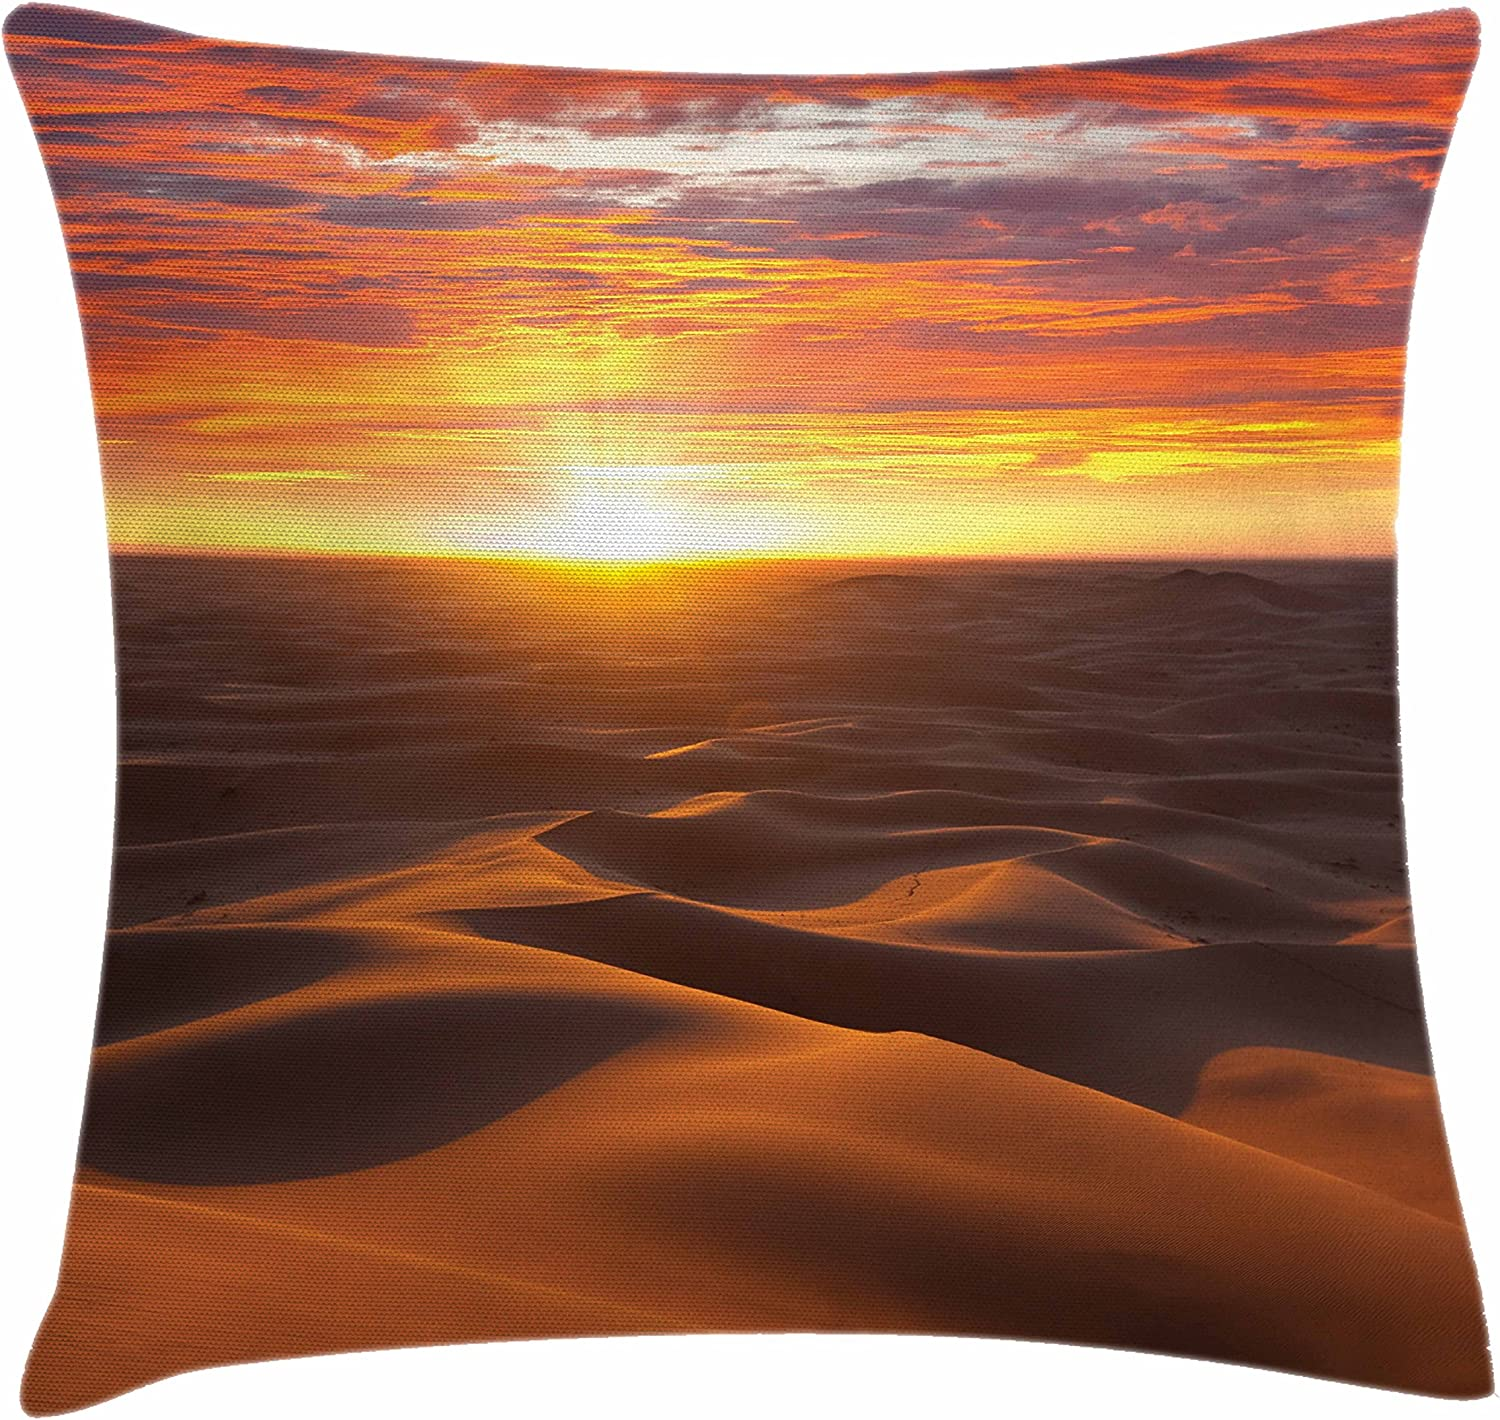 Amazon Com Ambesonne Desert Throw Pillow Cushion Cover Dramatic Sunset Scenery At Sahara Dunes Arid Landscape Morrocco Summer Nature Photo Decorative Square Accent Pillow Case 40 X 40 Multicolor Home Kitchen